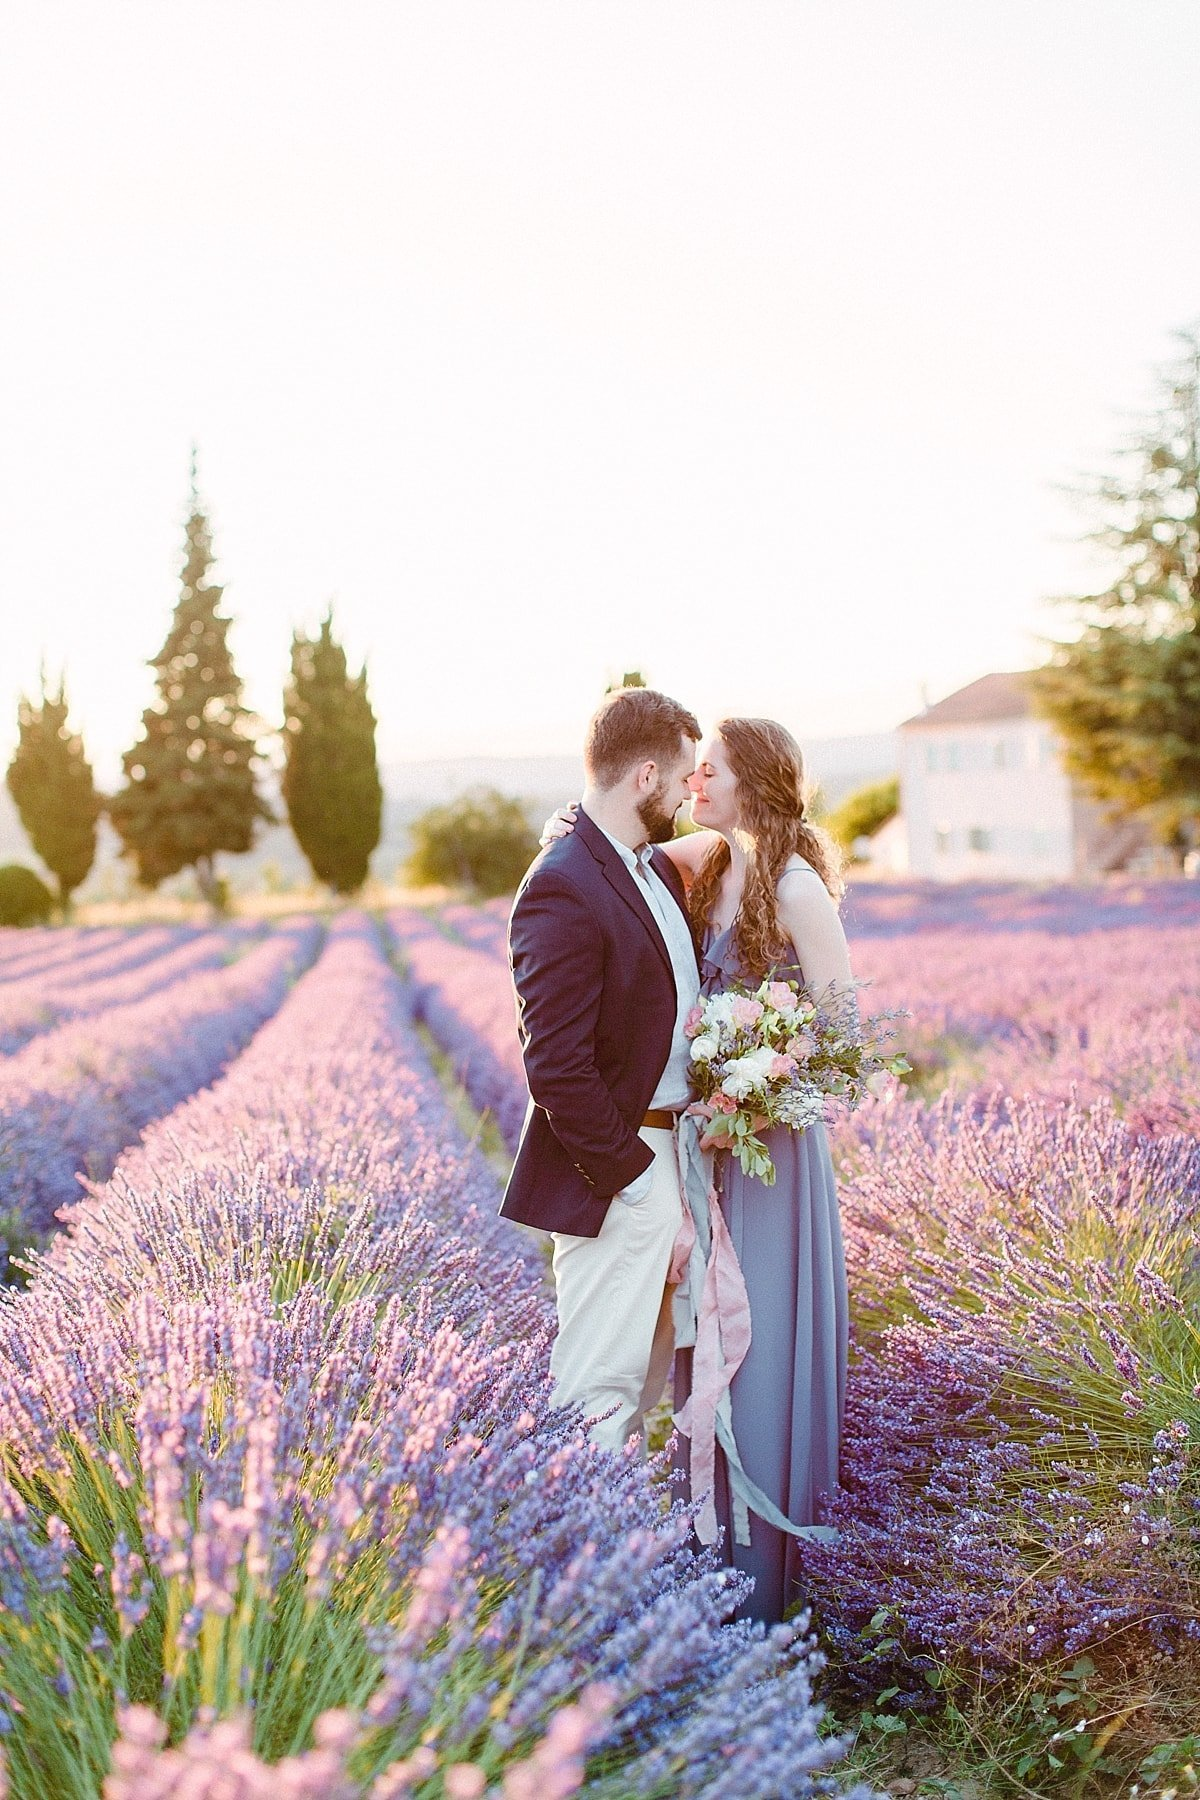 provence-france-lavender-anniversary-session-alicia-yarrish-photography-14